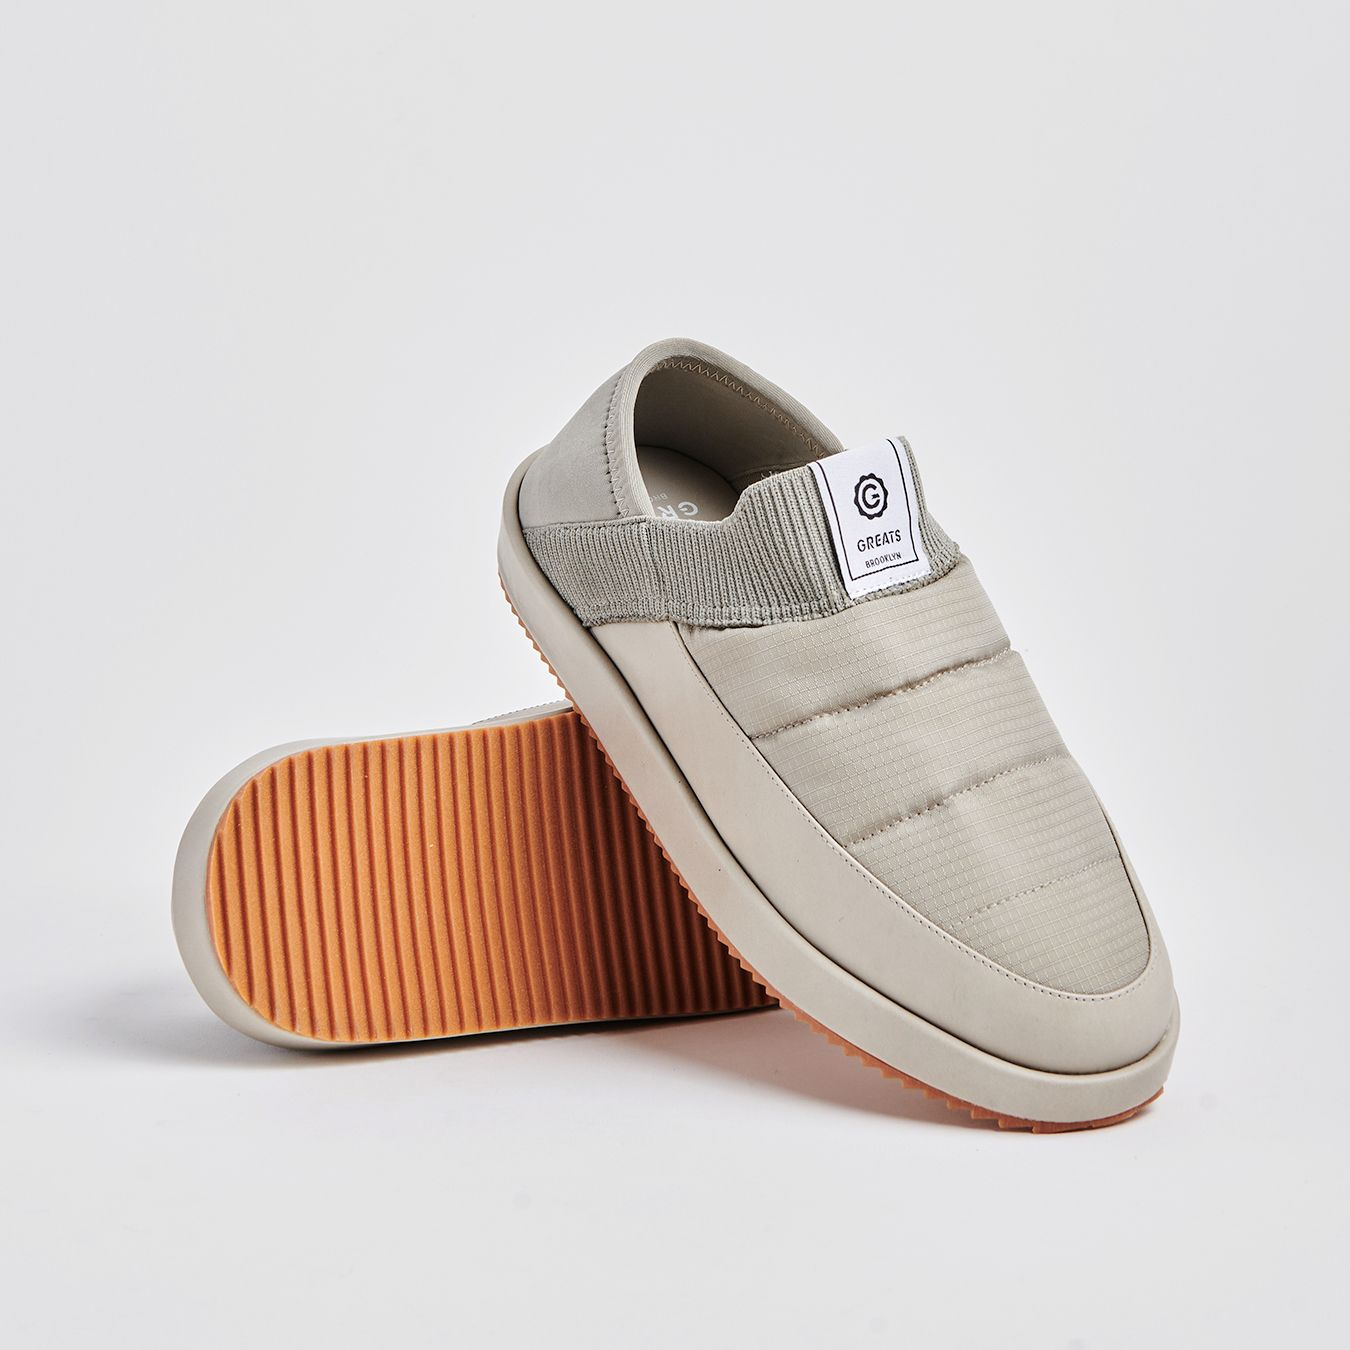 GREATS Introduces Two New Slipper Styles For The Fall Season